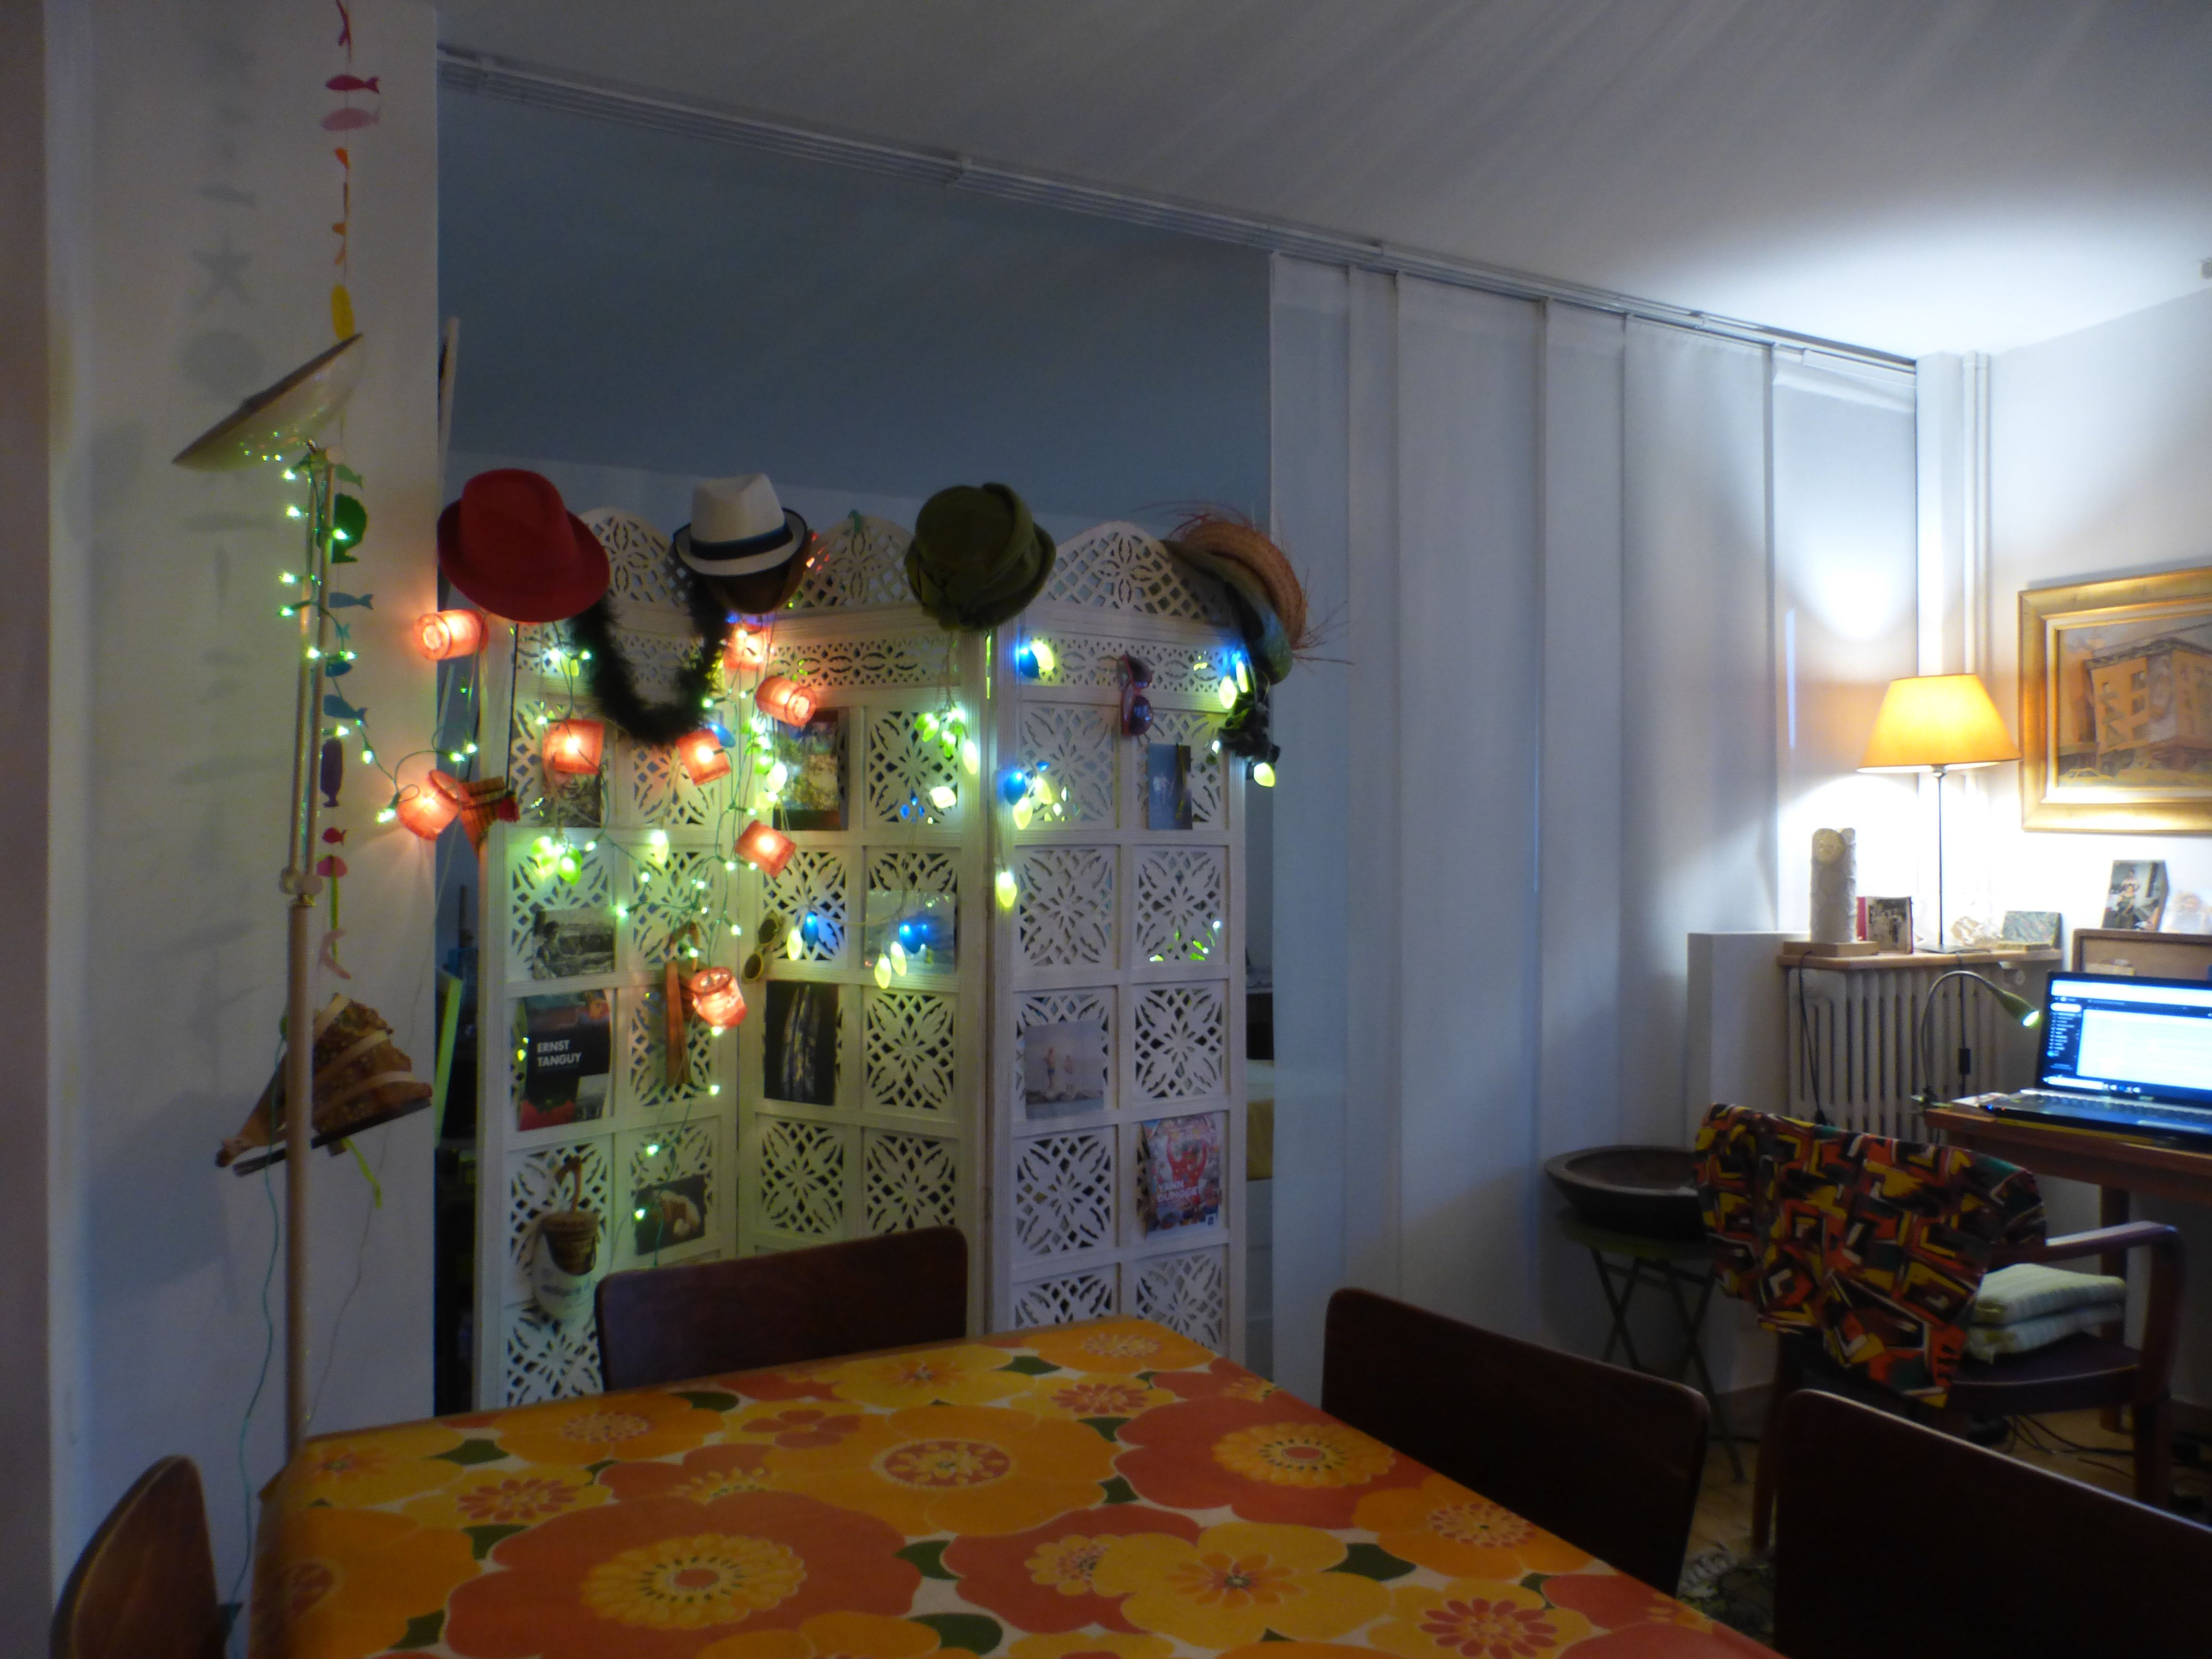 Cuisine-Colocation Montpellier NA & Location Chambre à louer Montpellier NA   Loue chambre meublée Montpellier NA   Logement Montpellier NA